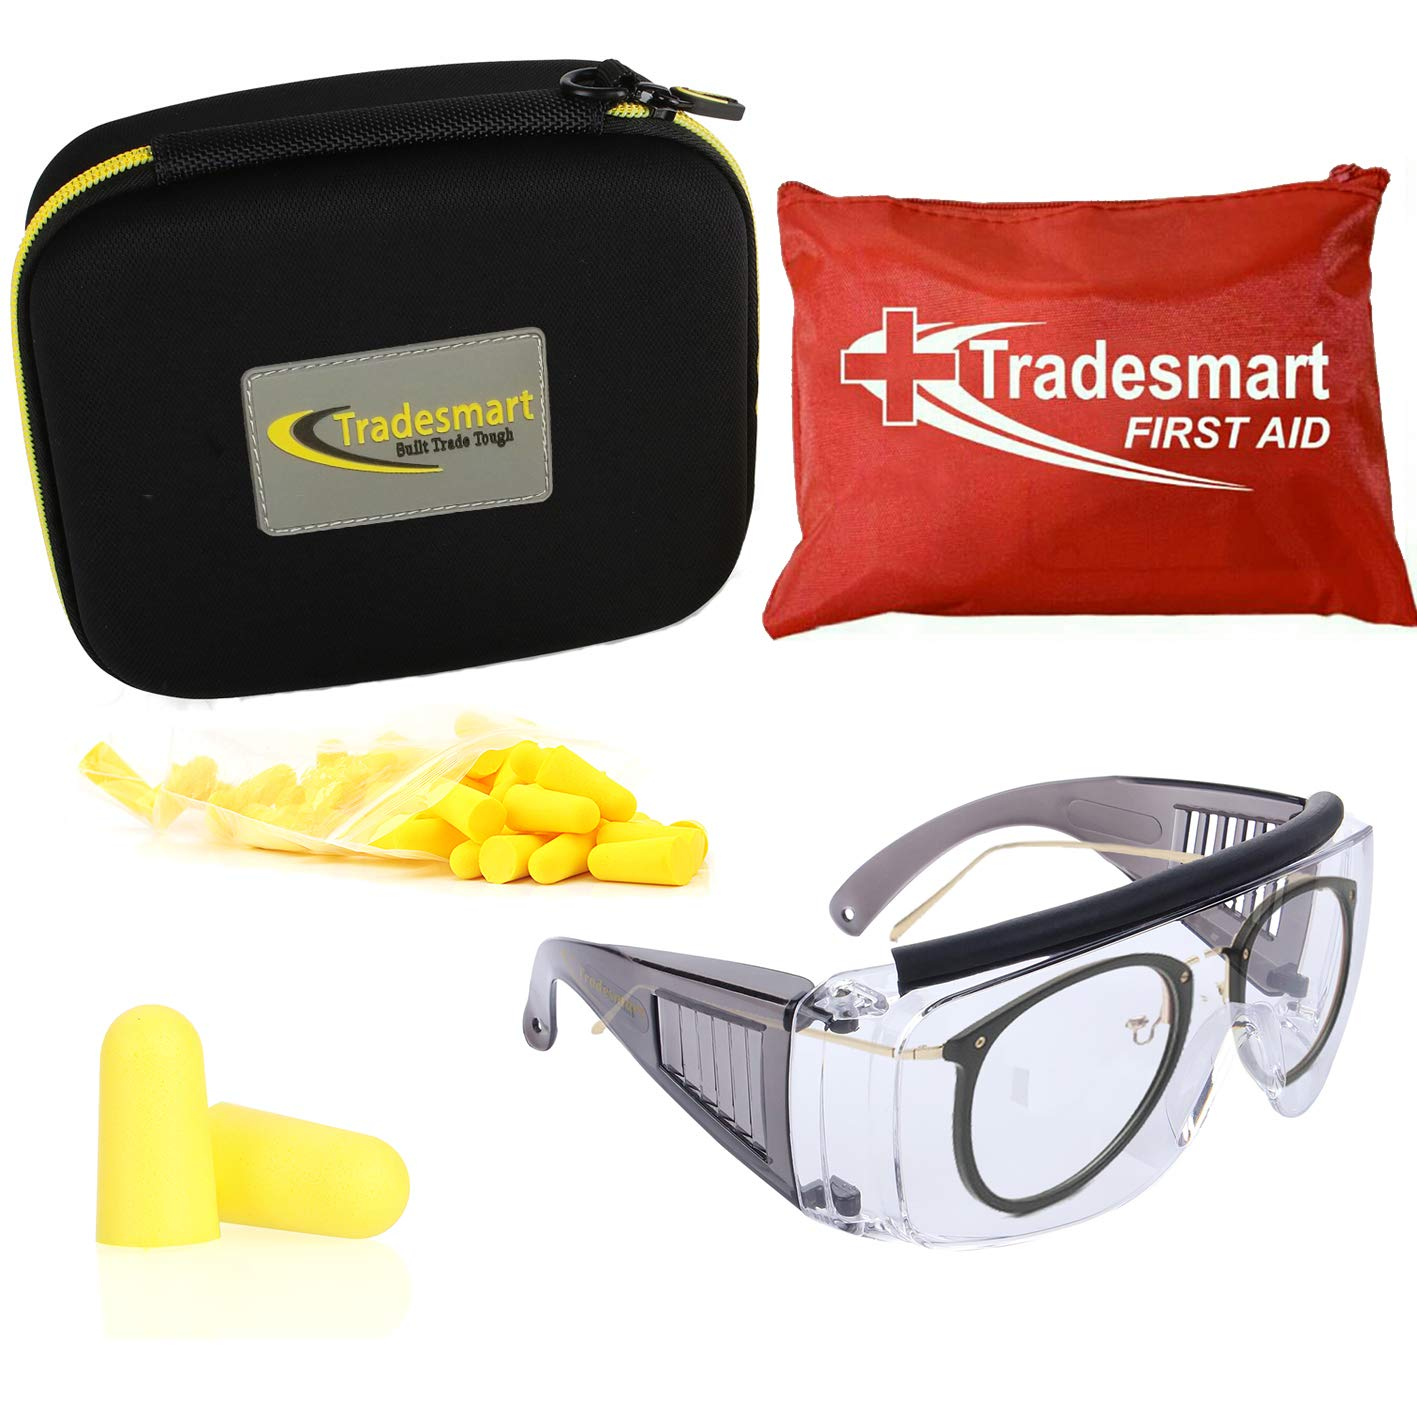 TRADESMART Over Prescription Glasses and Ear Plugs - Ear and Eye Protection for The Gun Range with 37 pc First Aid Kit, - UV400 Anti-Fog and Anti-Scratch Clear Glasses (Yellow) by TRADESMART BUILT TRADE TOUGH